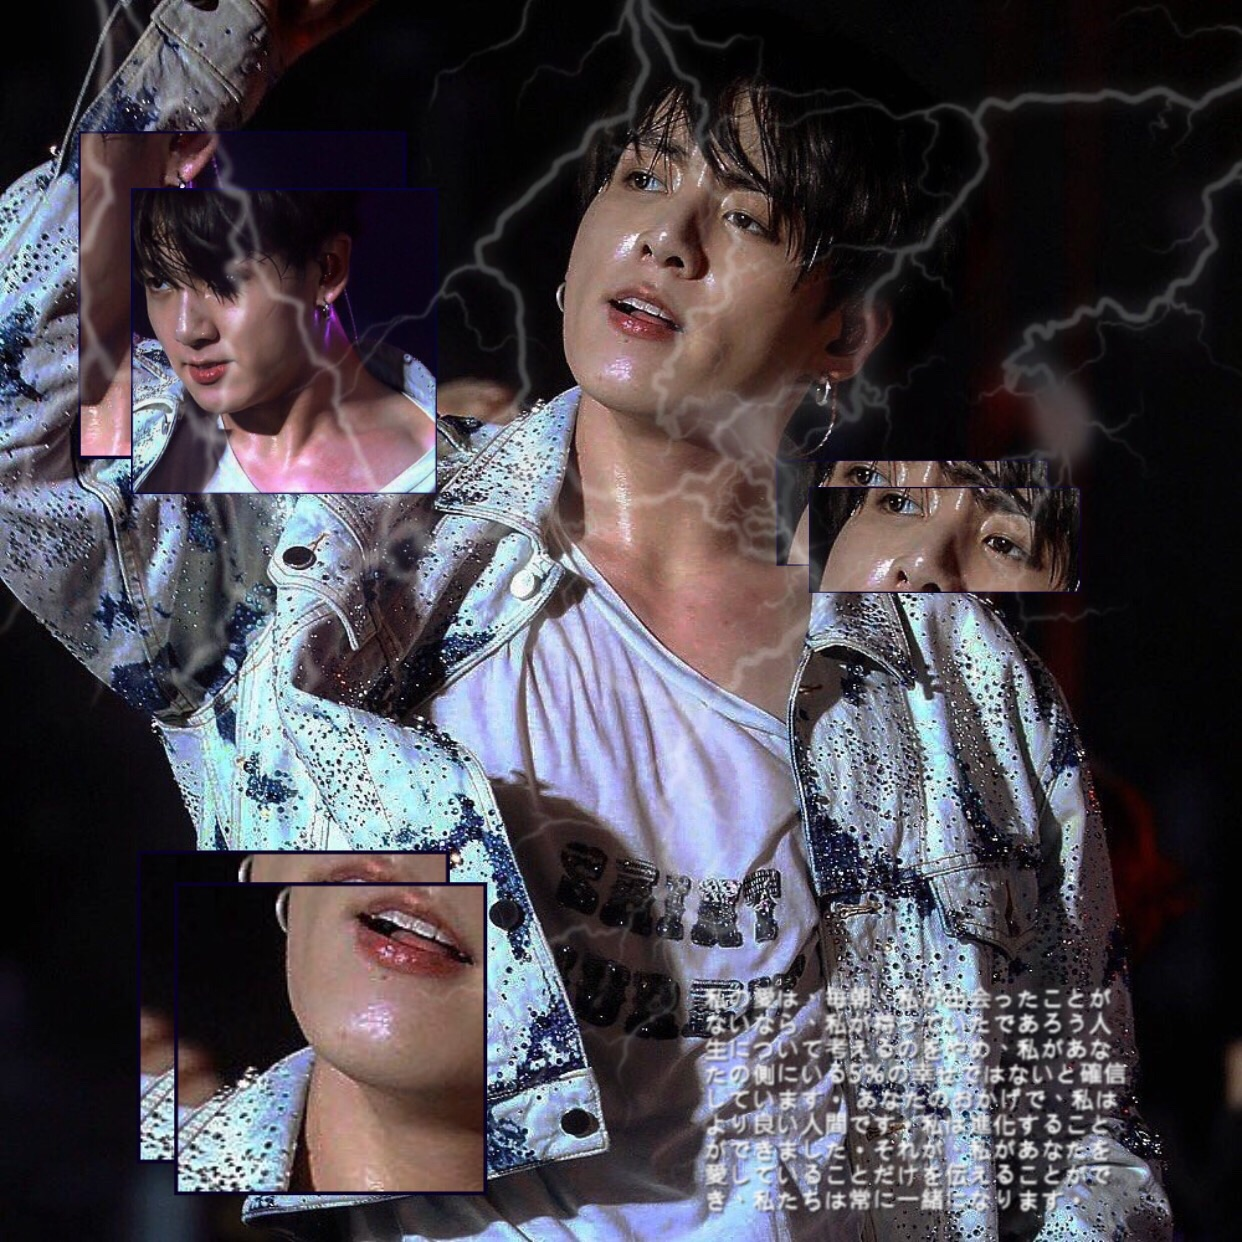 cyber, kpoprp, jungkook edit and cyber theme